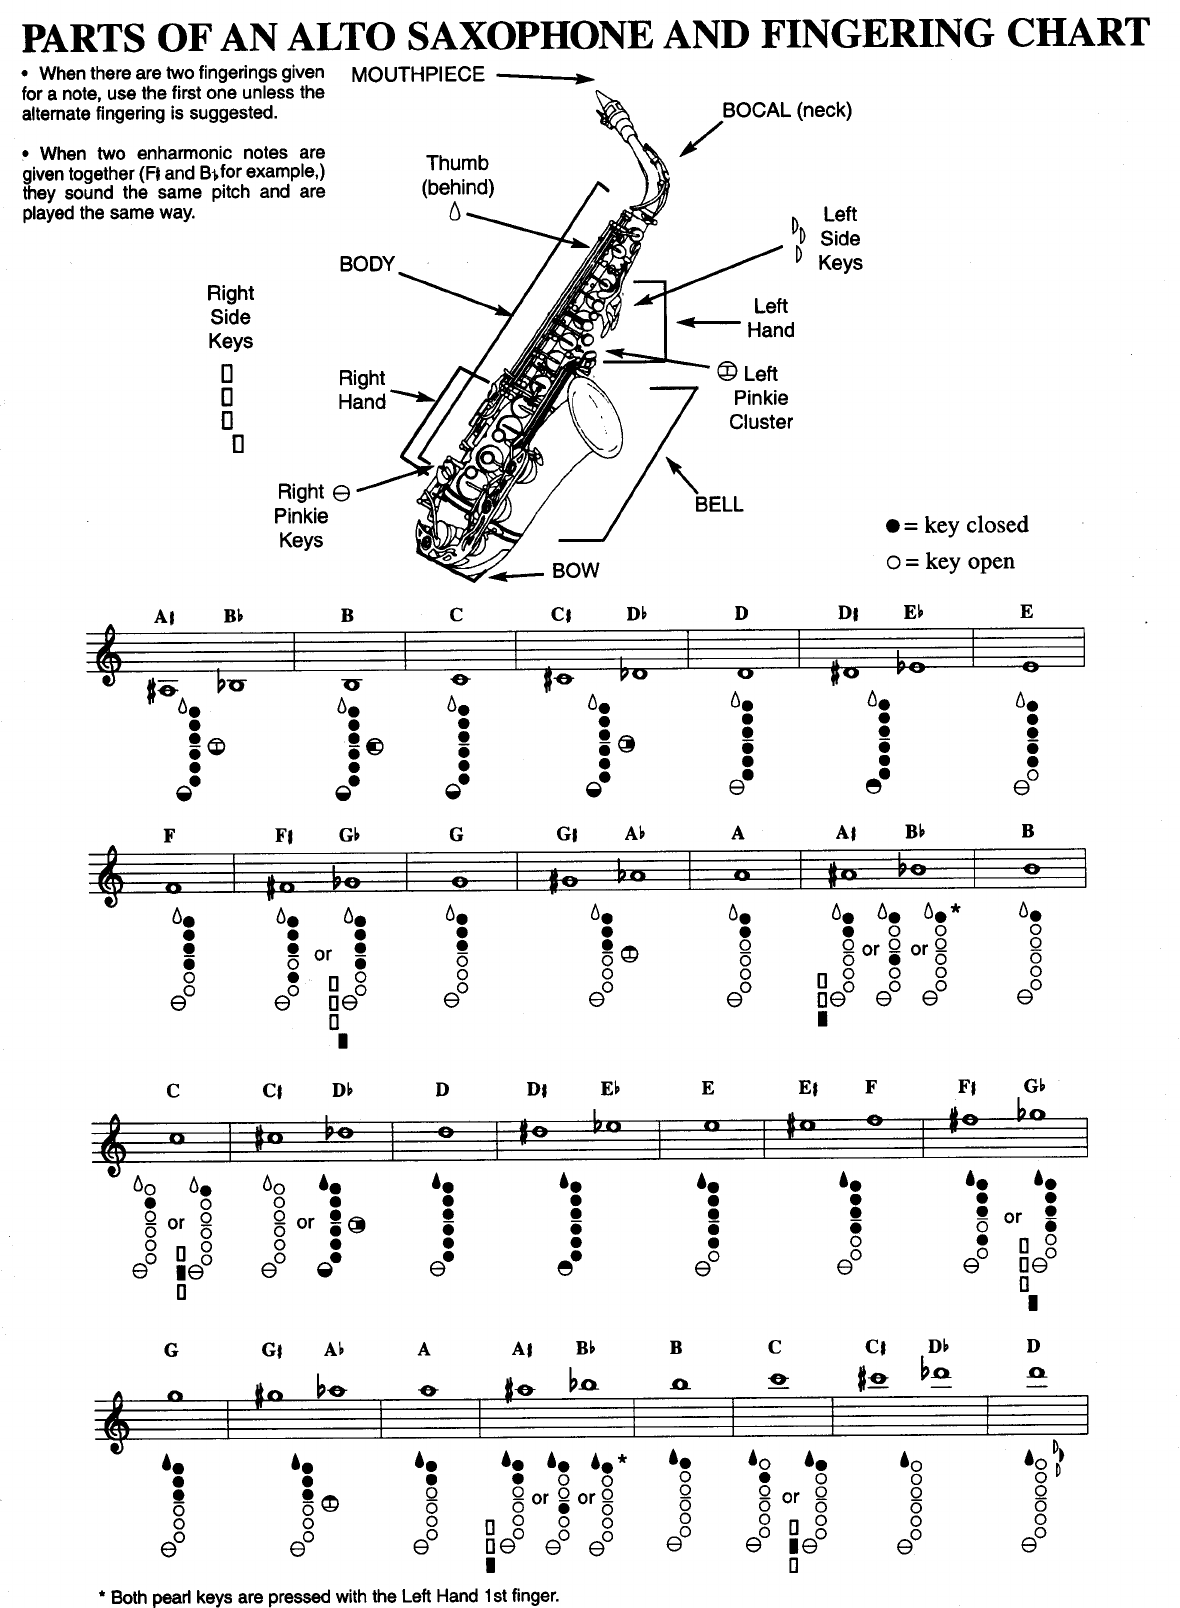 Parts of an alto saxophone and fingering chart – Saxophone Fingering Chart